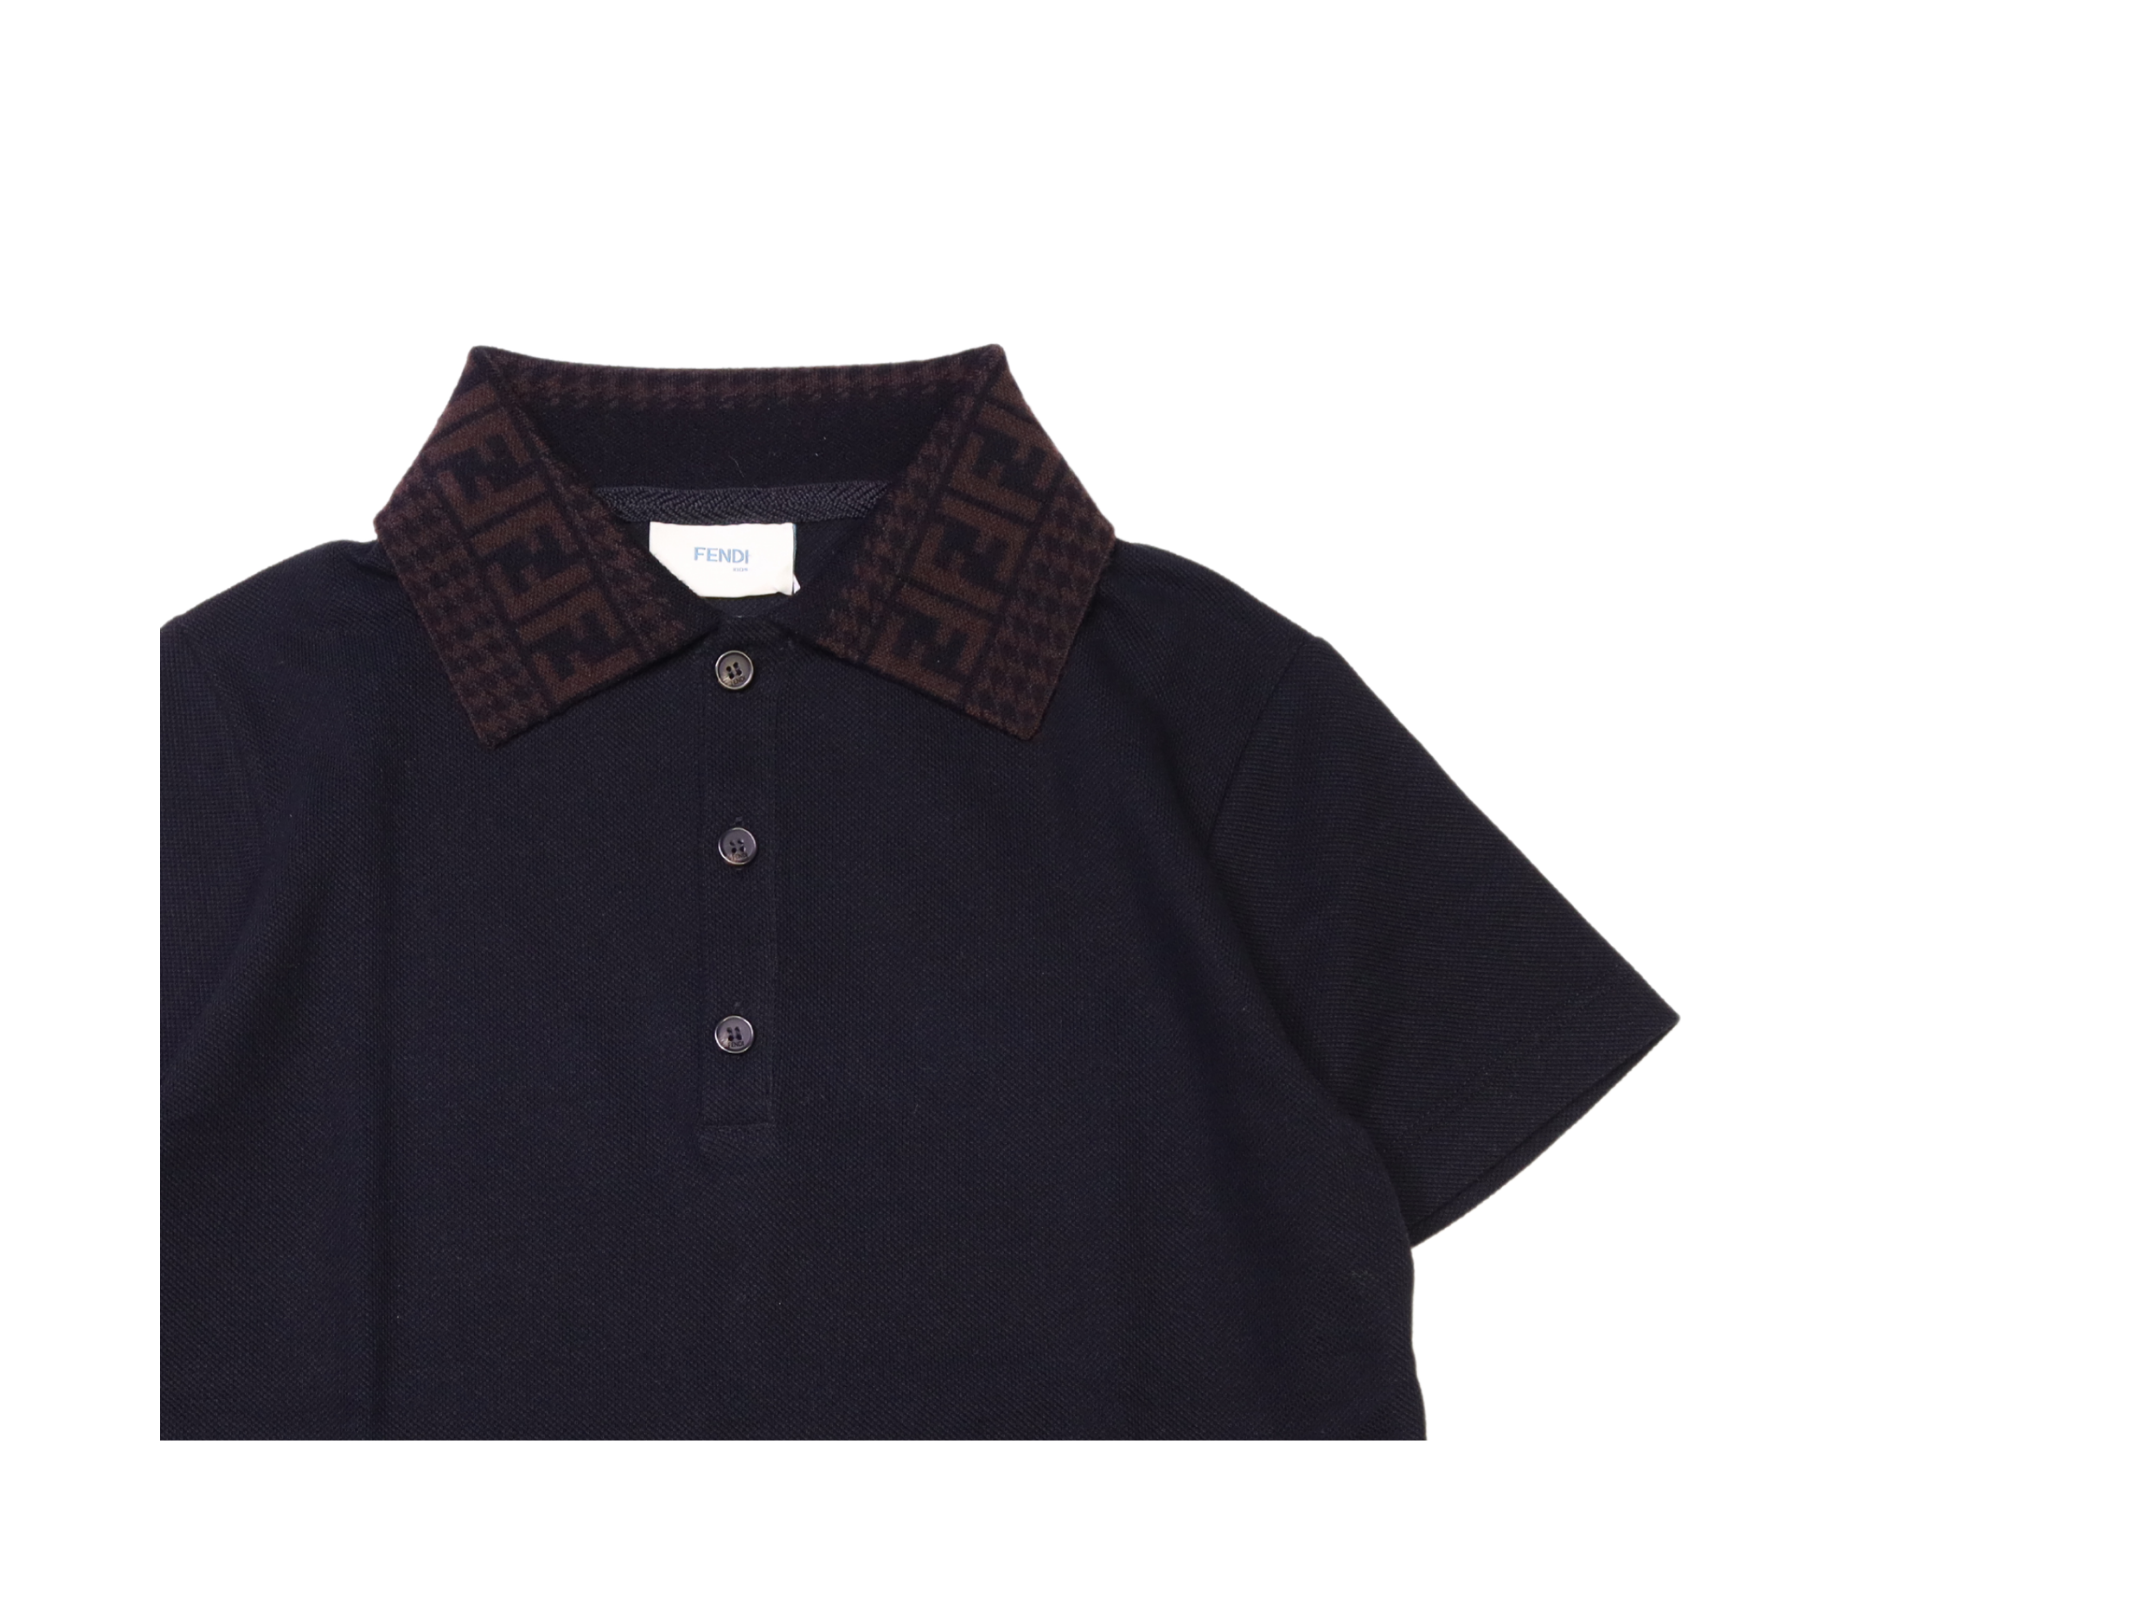 Polo fendi kids FENDI KIDS | Polo | TSA2536NERO